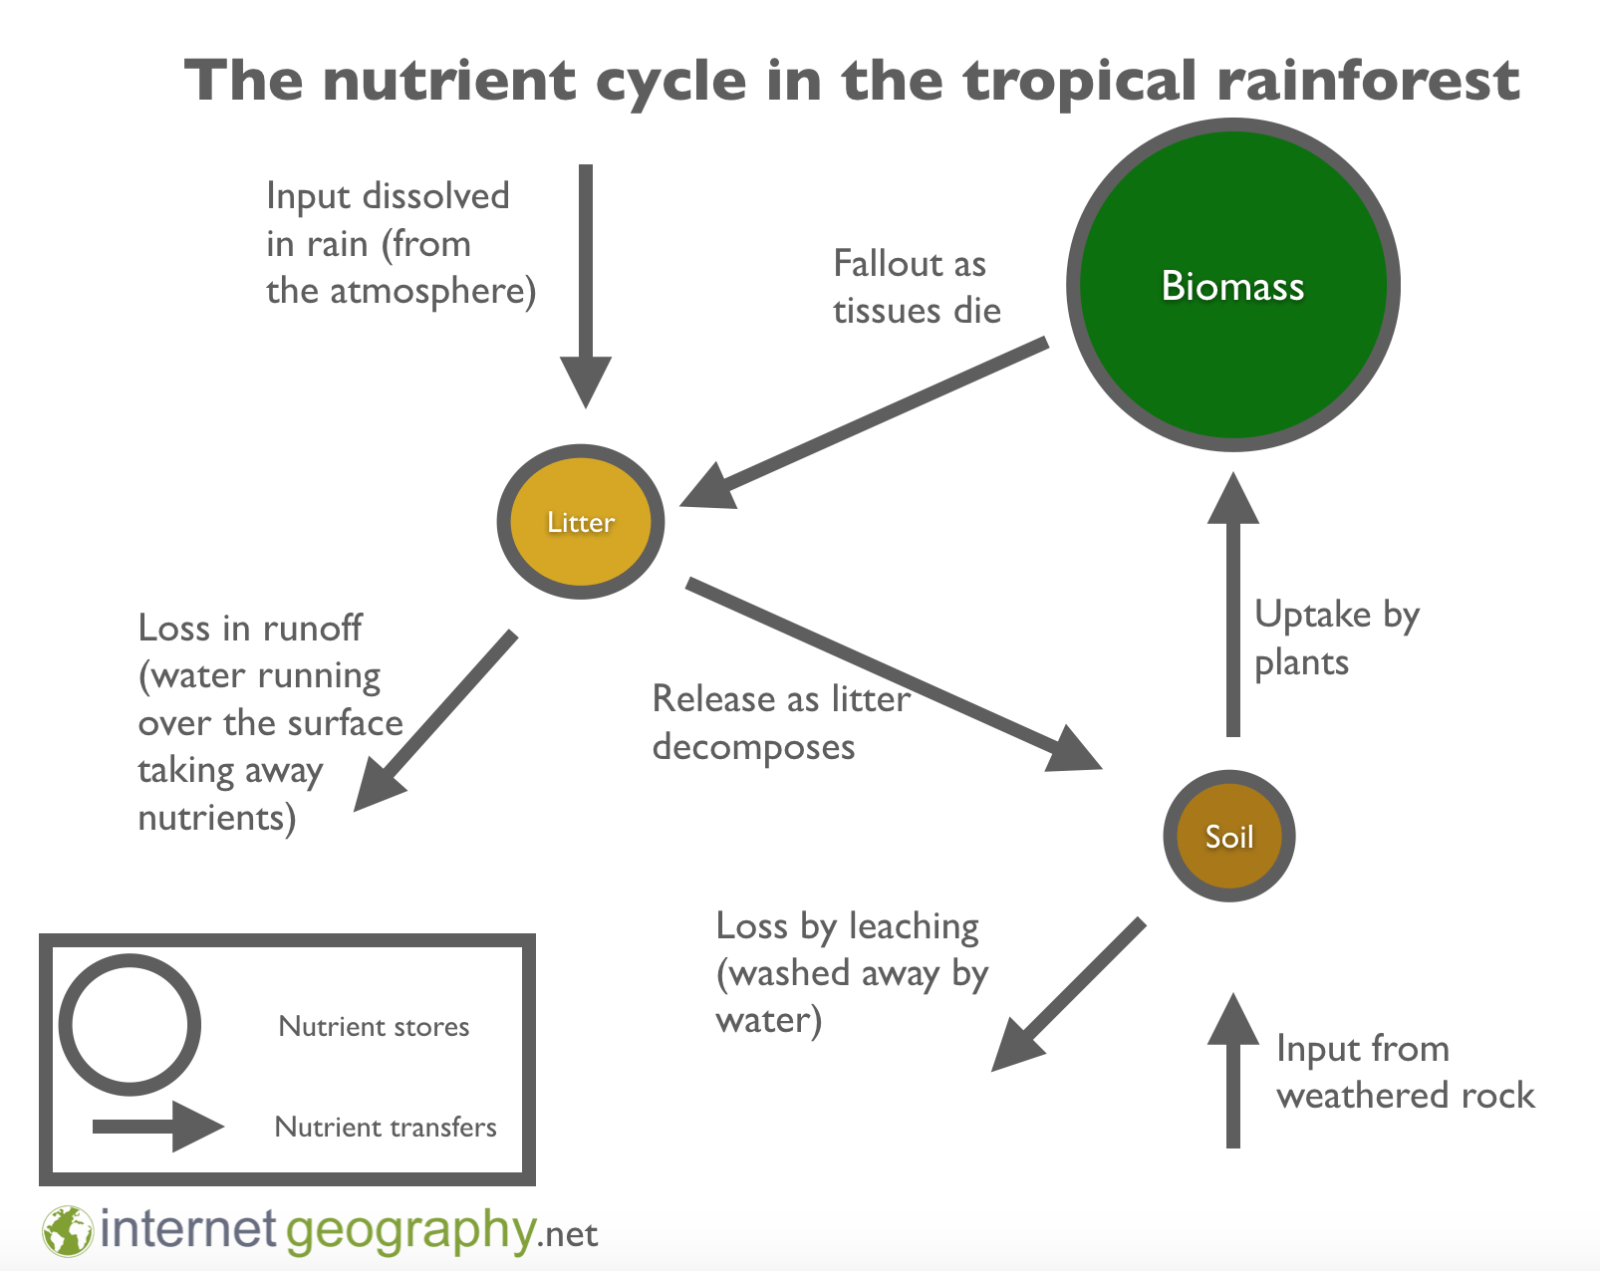 The nutrient cycle in the rainforest ecosystem